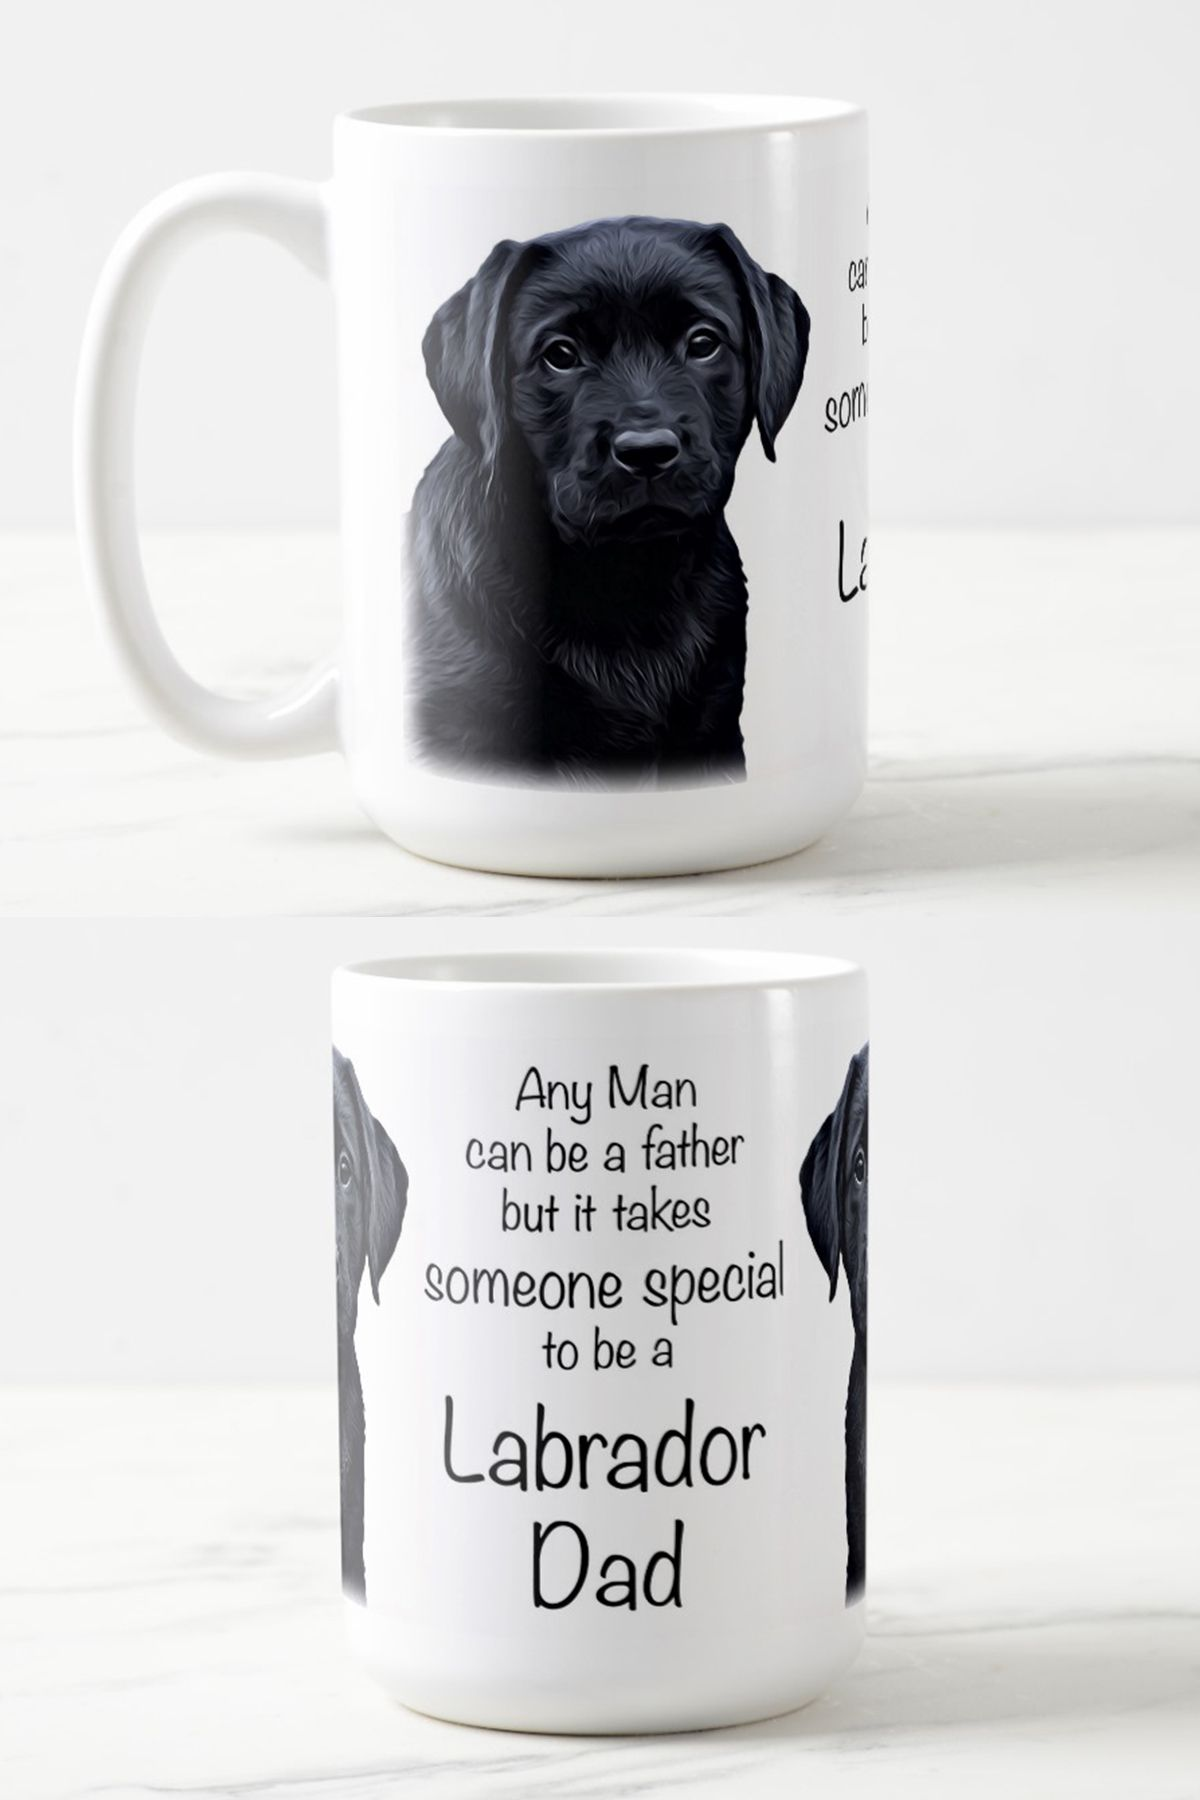 973f6e201 Any man can be a father but it takes someone special to be a Labrador Dad